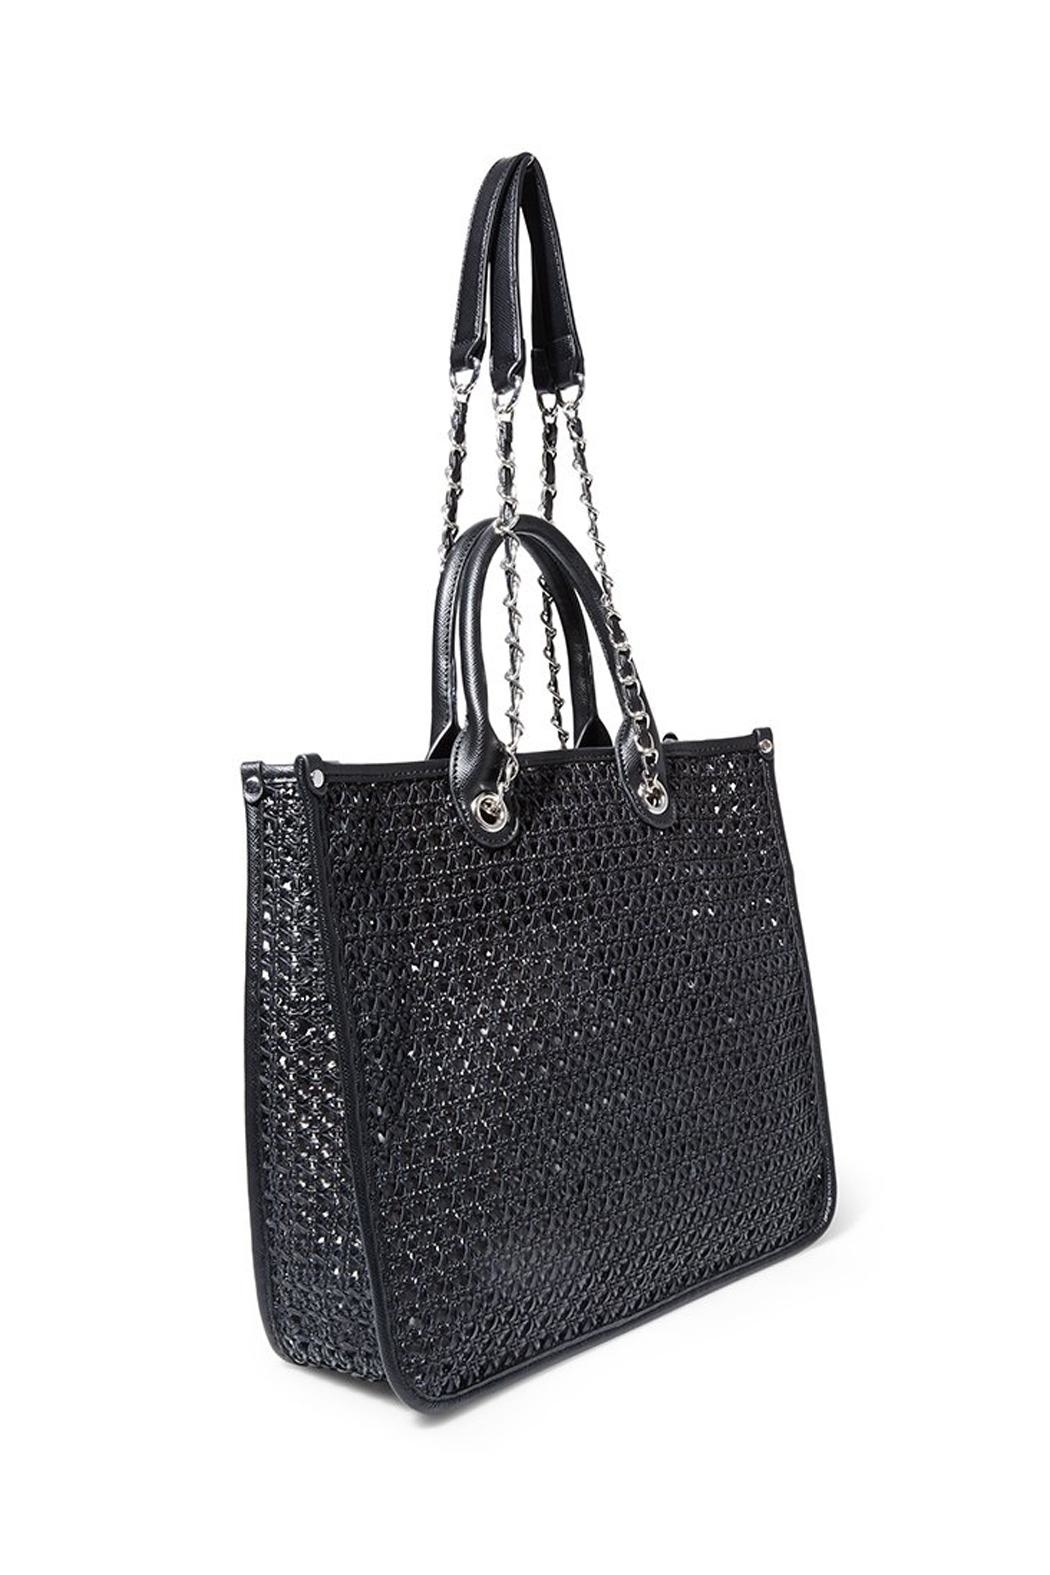 Steven by Steve Madden Bstacy Woven Tote - Front Full Image